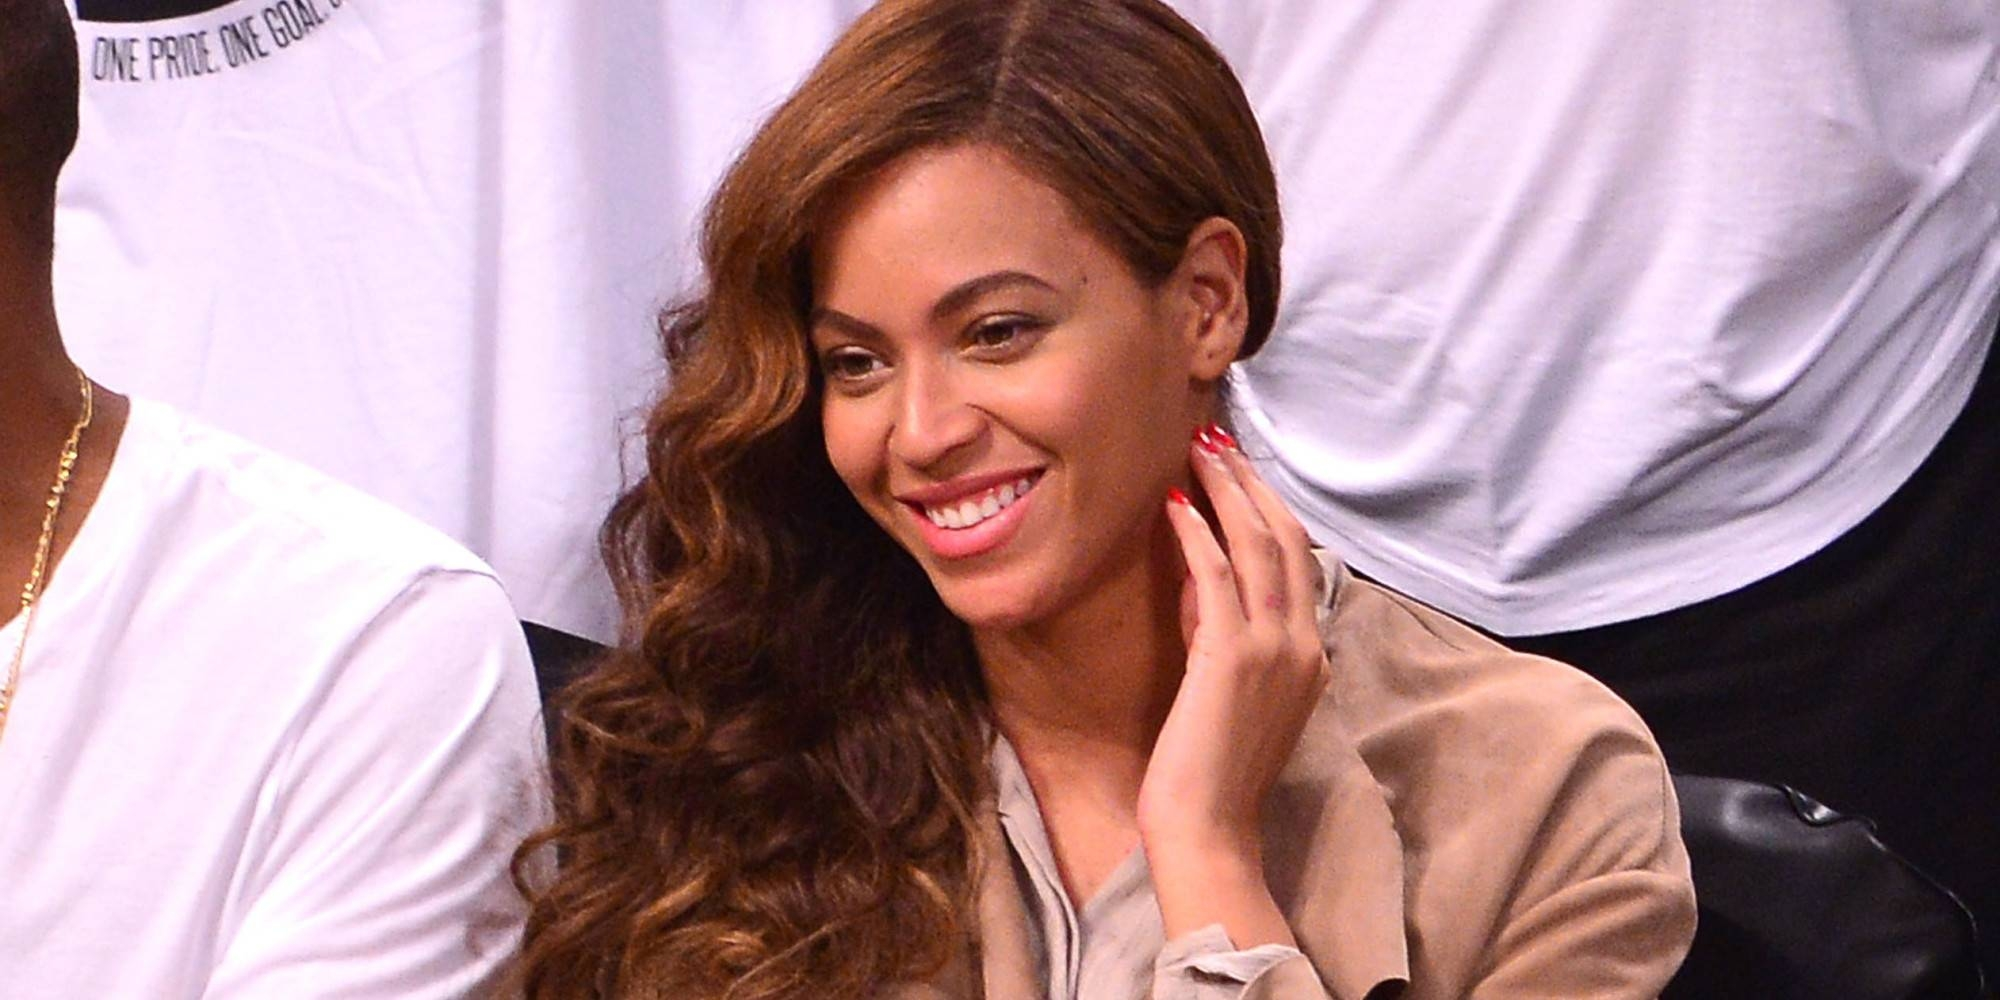 Beyonce Wedding Ring Finger Tattoo Throughout Beyonce's Wedding Rings (View 4 of 15)